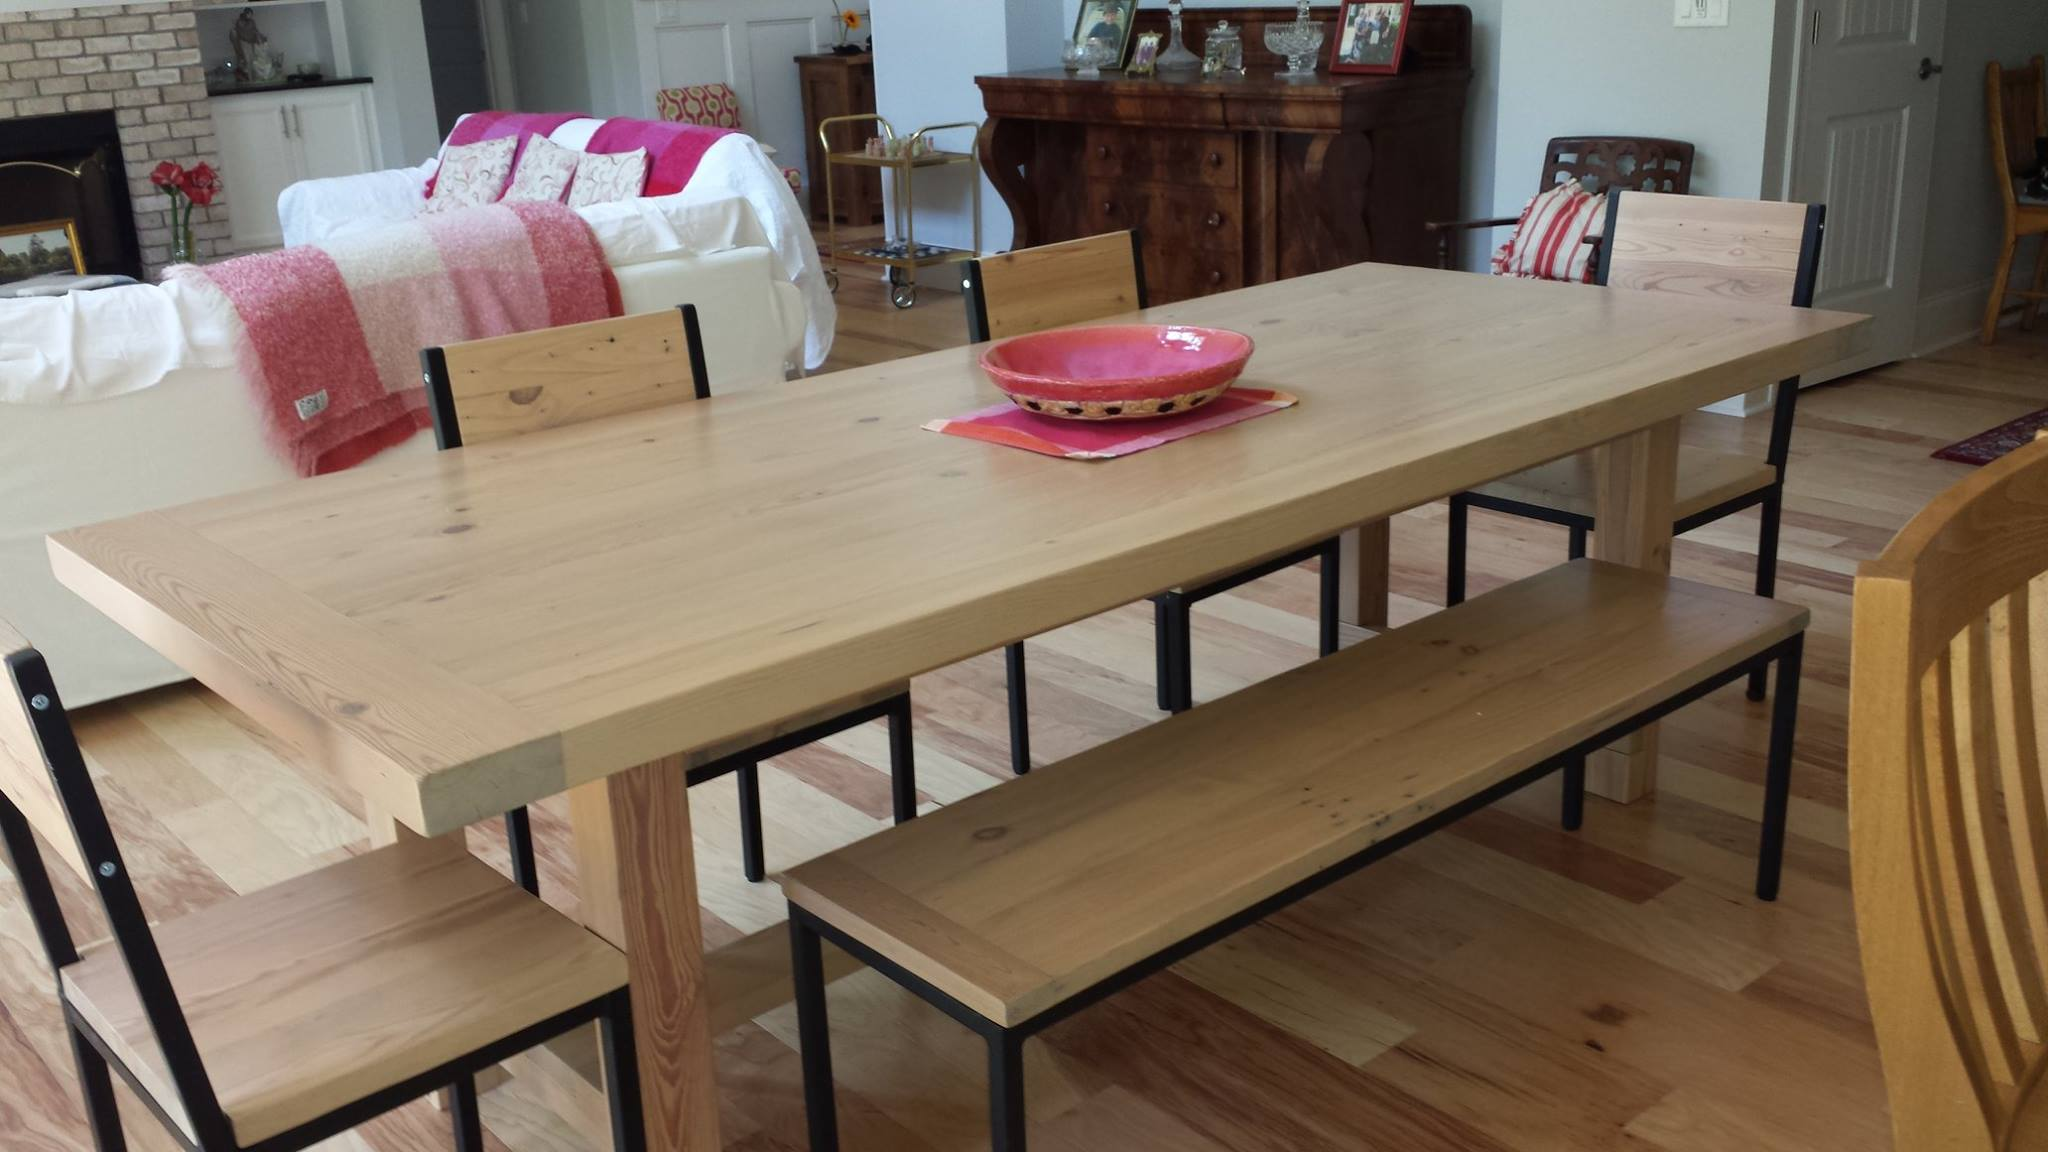 Handcrafted Wood Table with Chairs and Bench